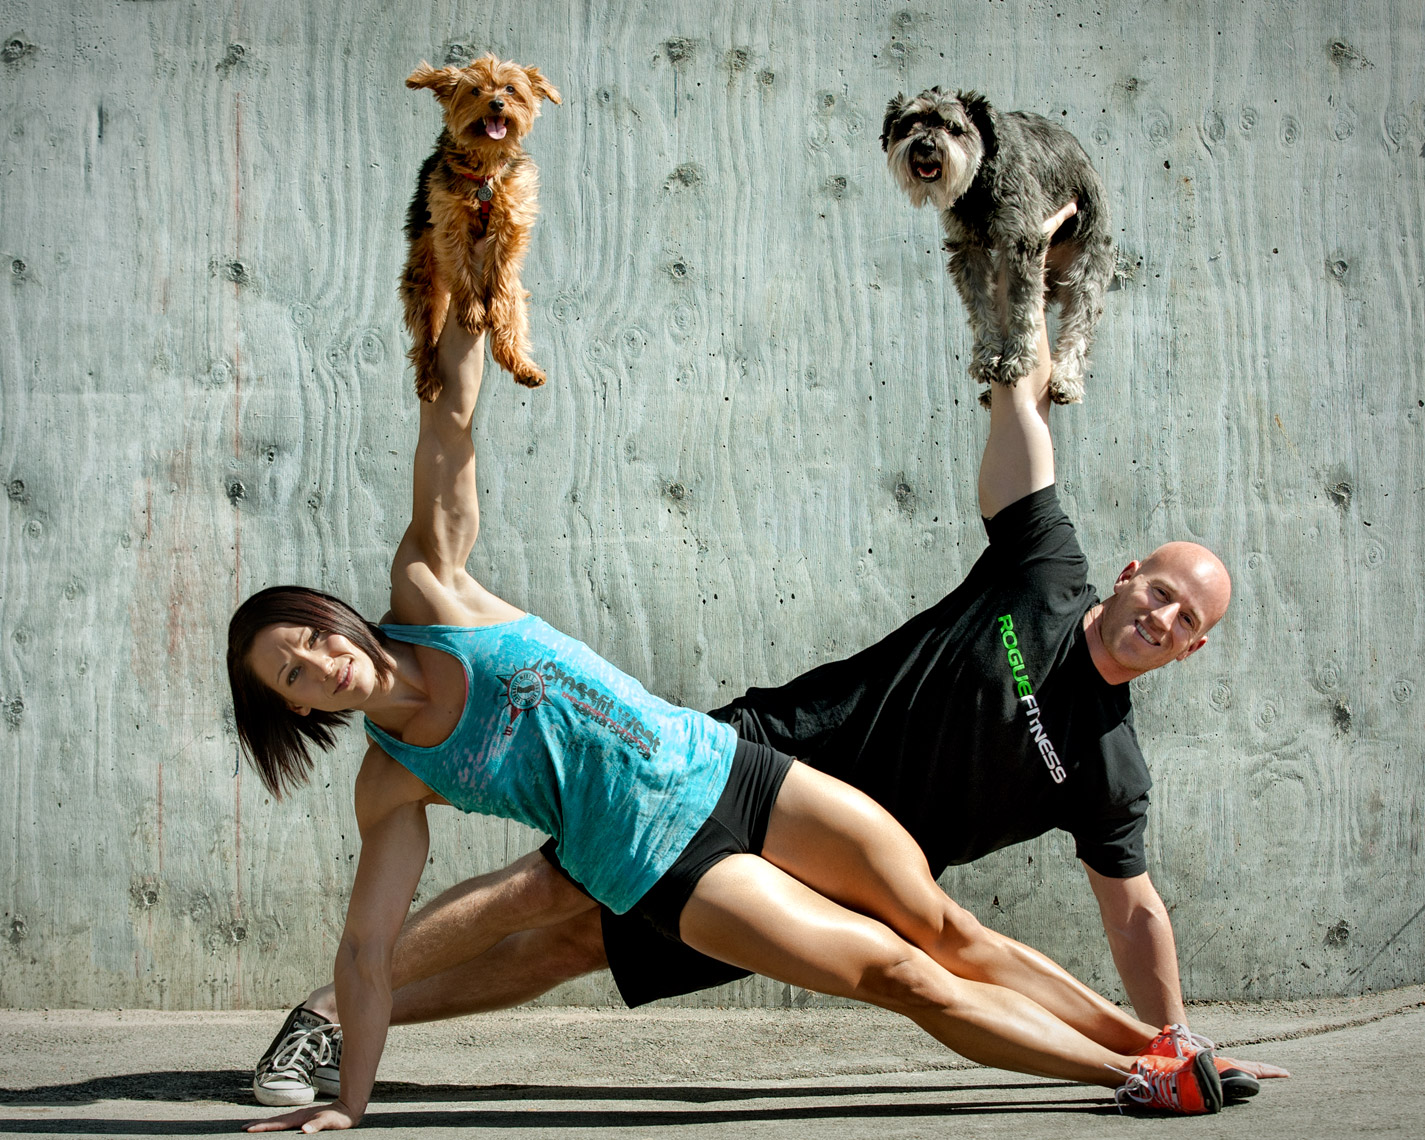 20121009_crossfit_athlete_dog_4215_nik_keller